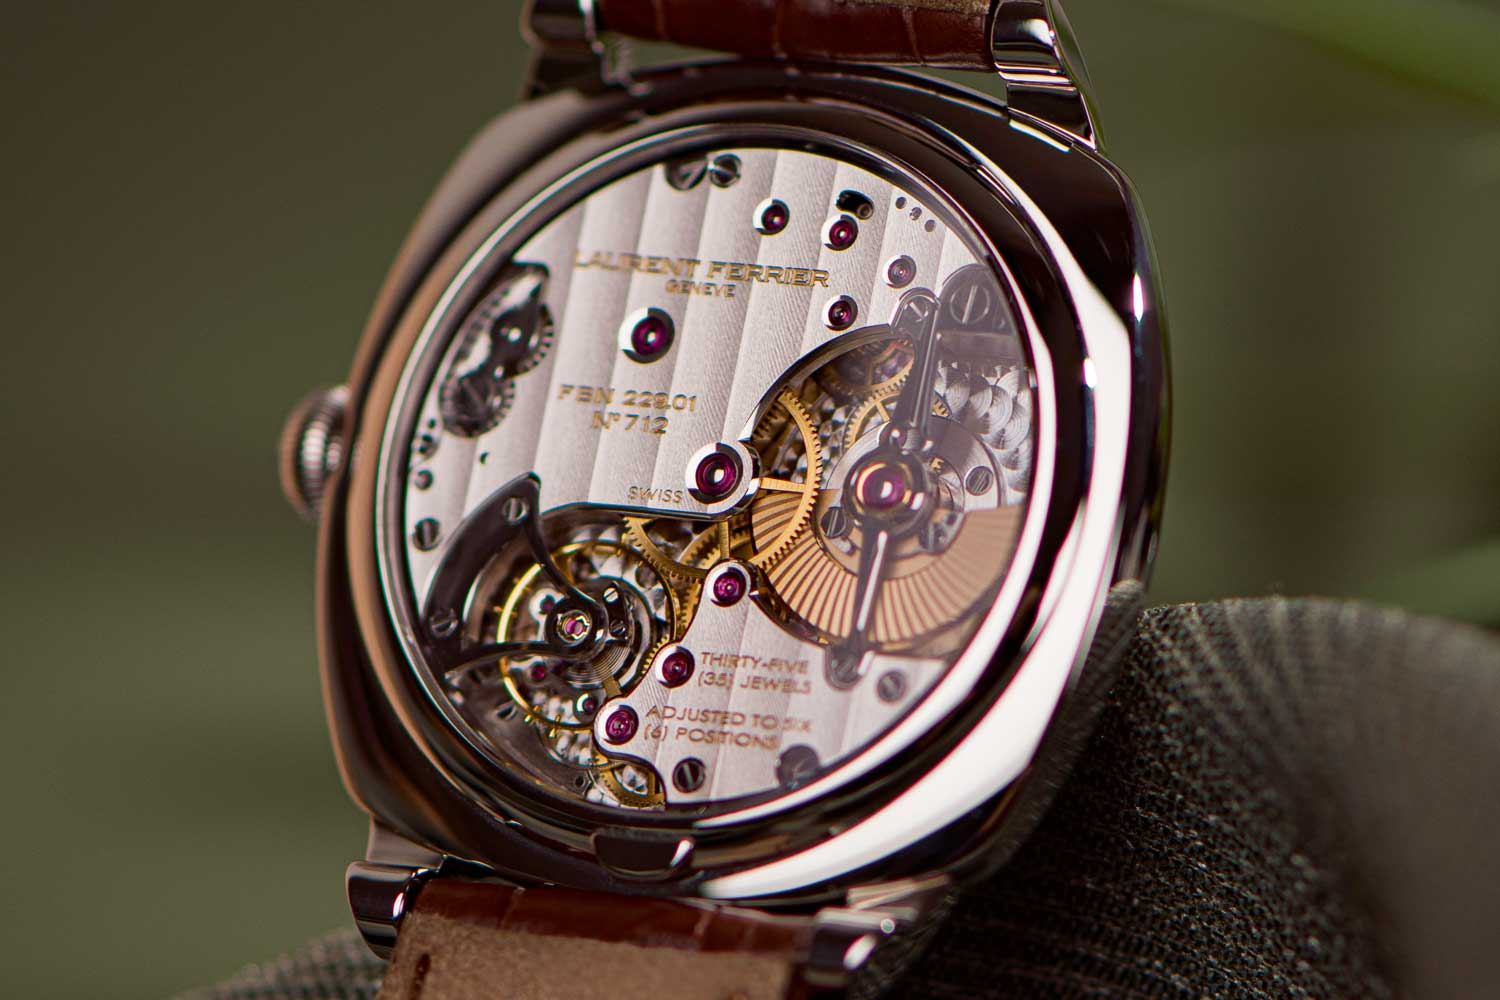 The Square won the prize for Best Horological Revelation in 2015 at the GPHG.